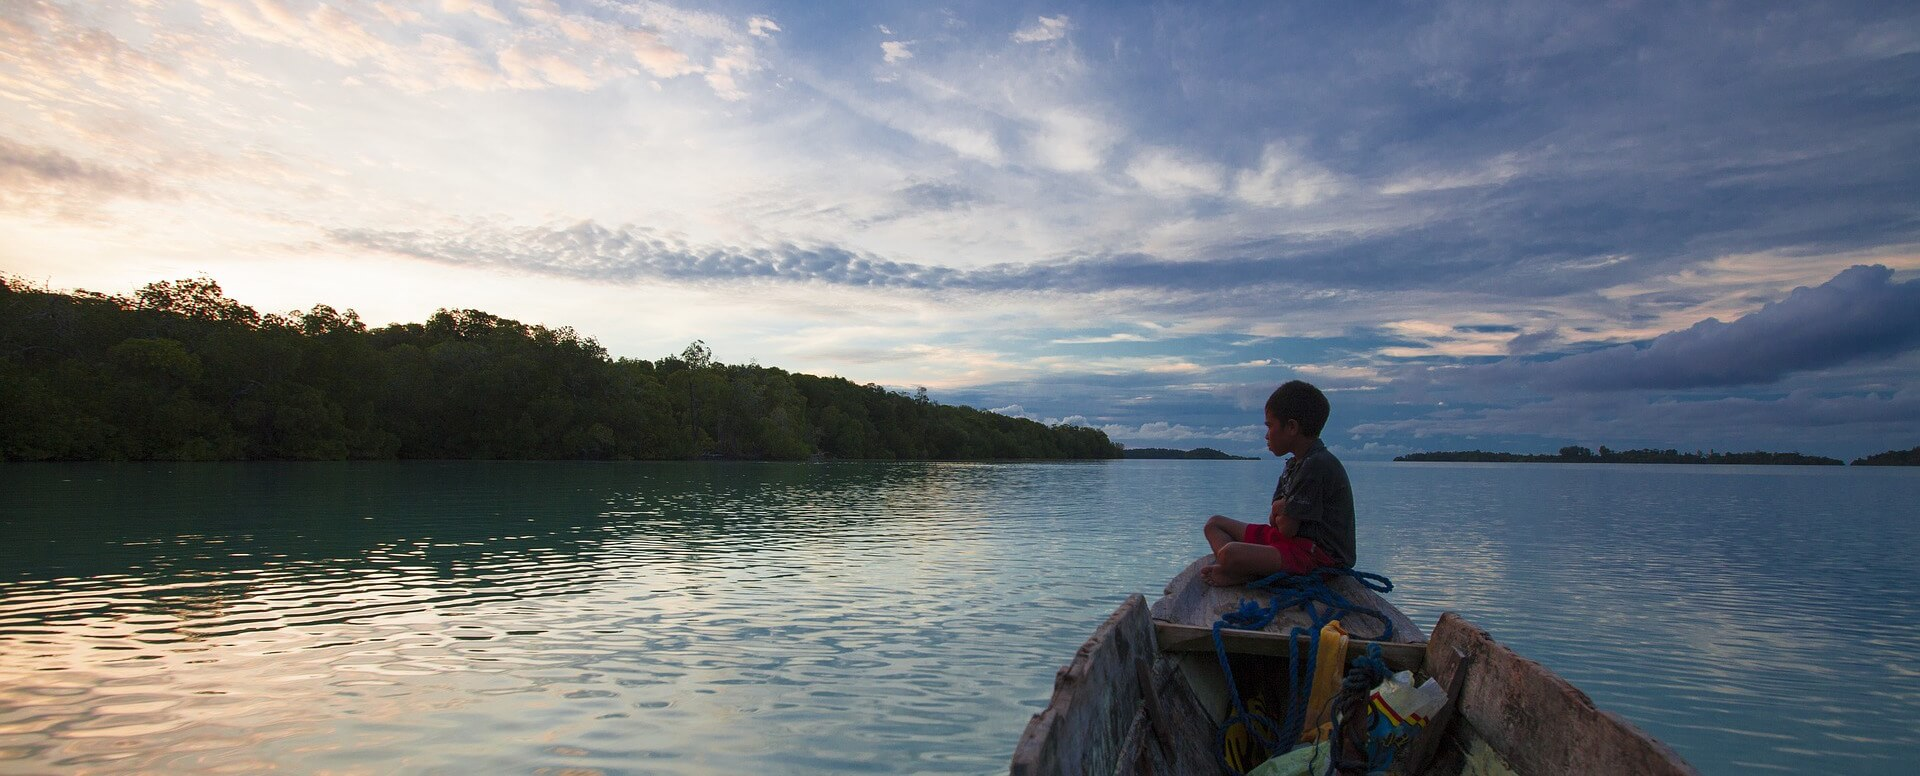 What to do in Indonesia? Activity Guide - Indonesia